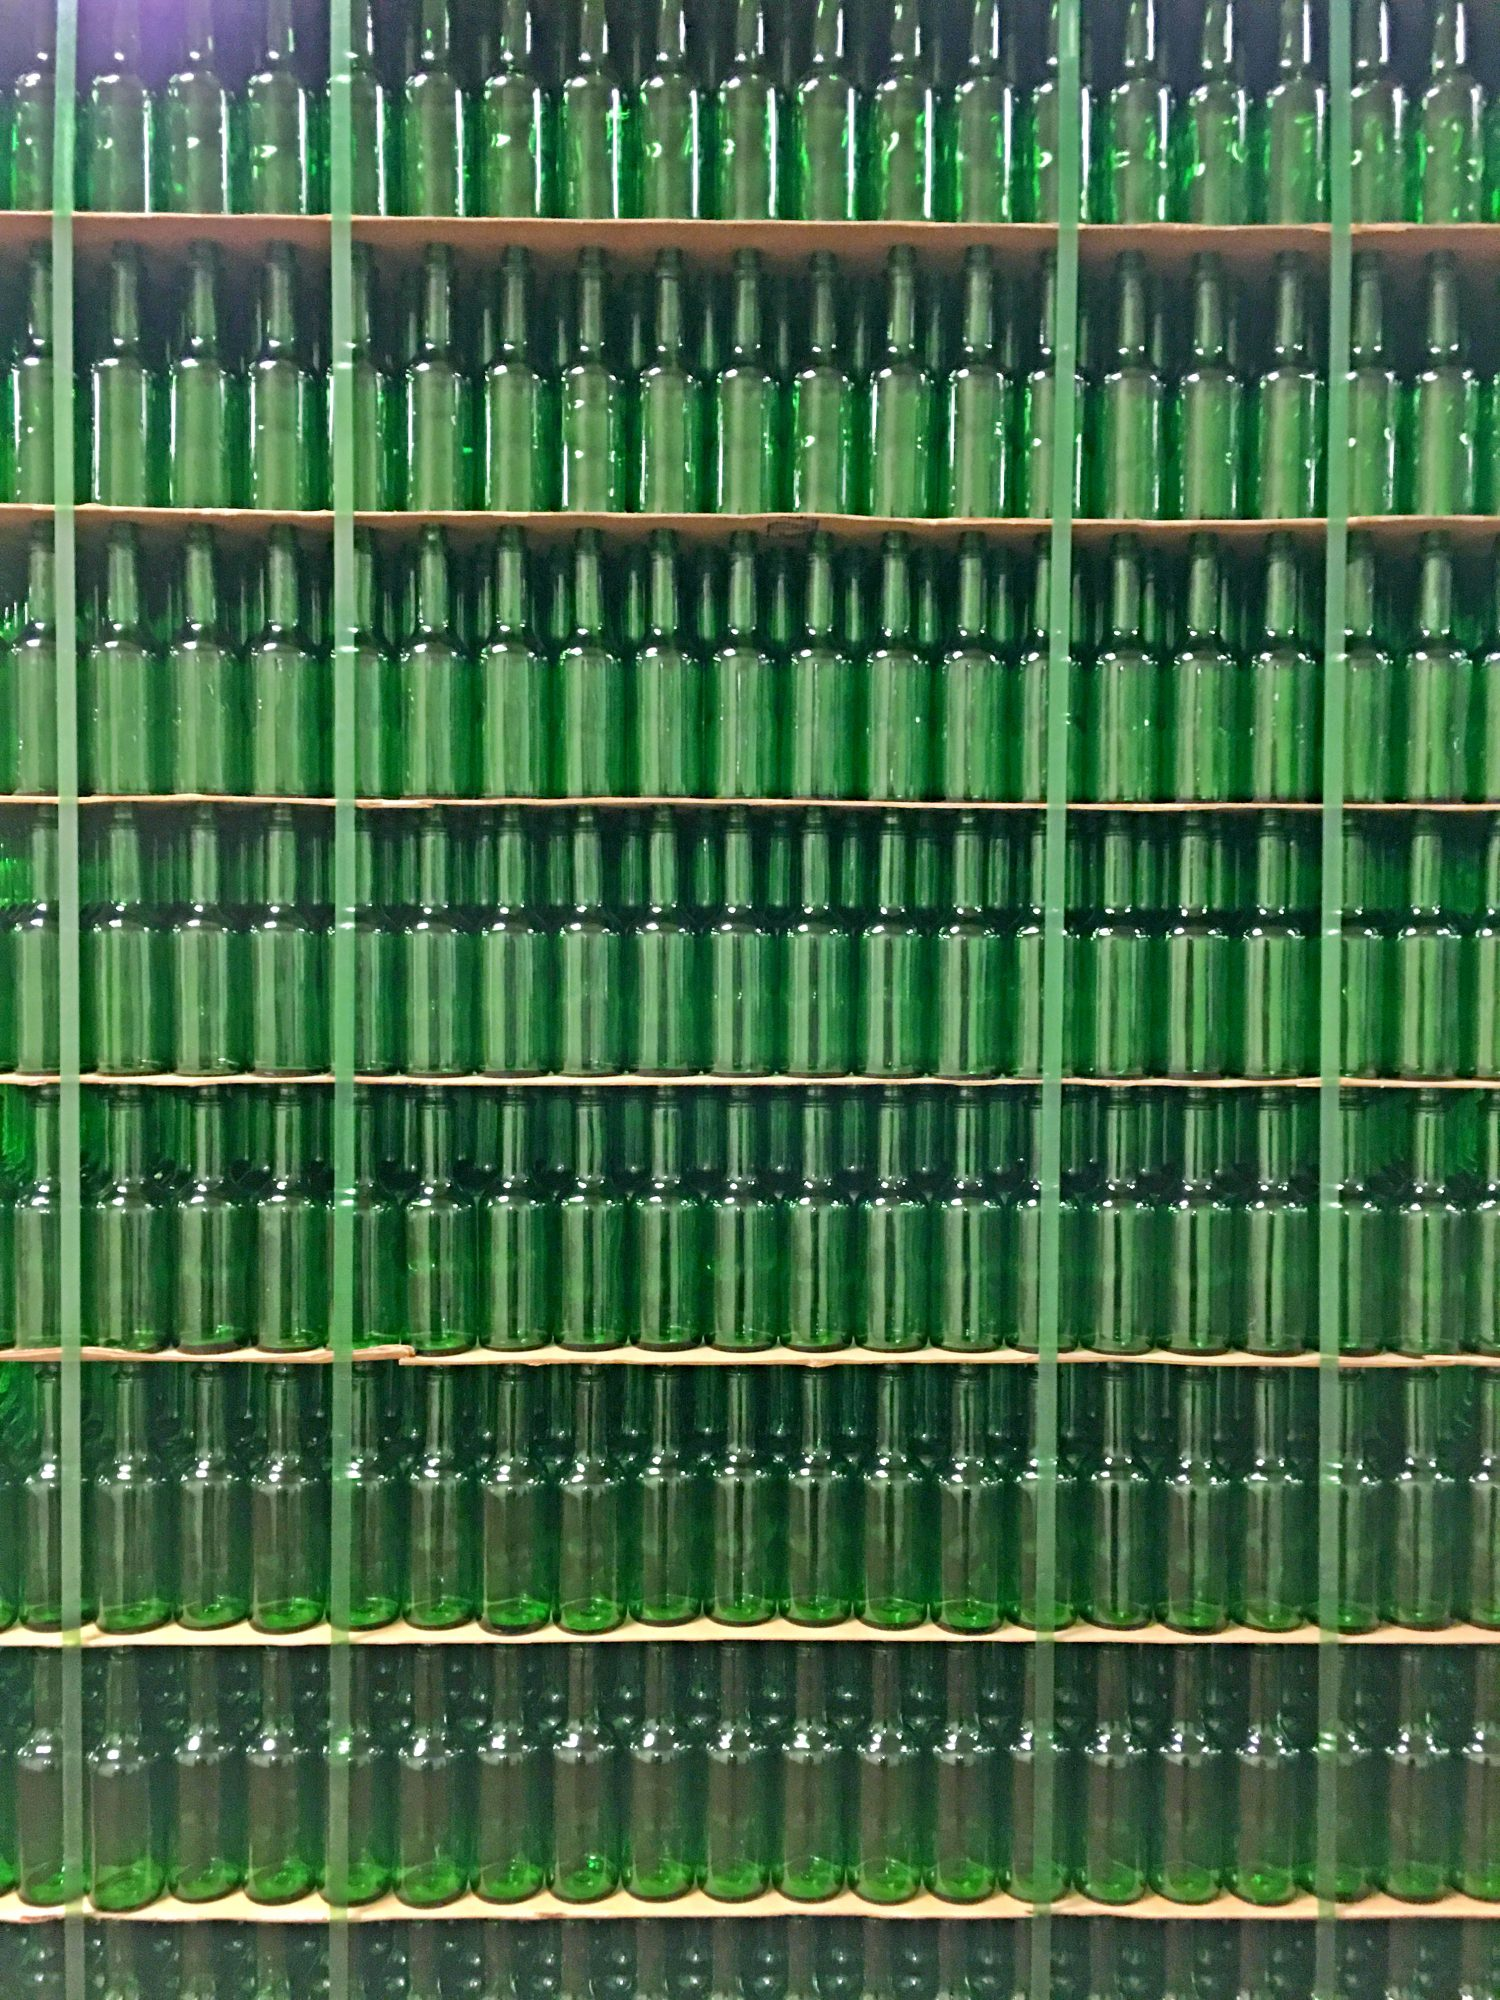 Tabasco Factory Bottles